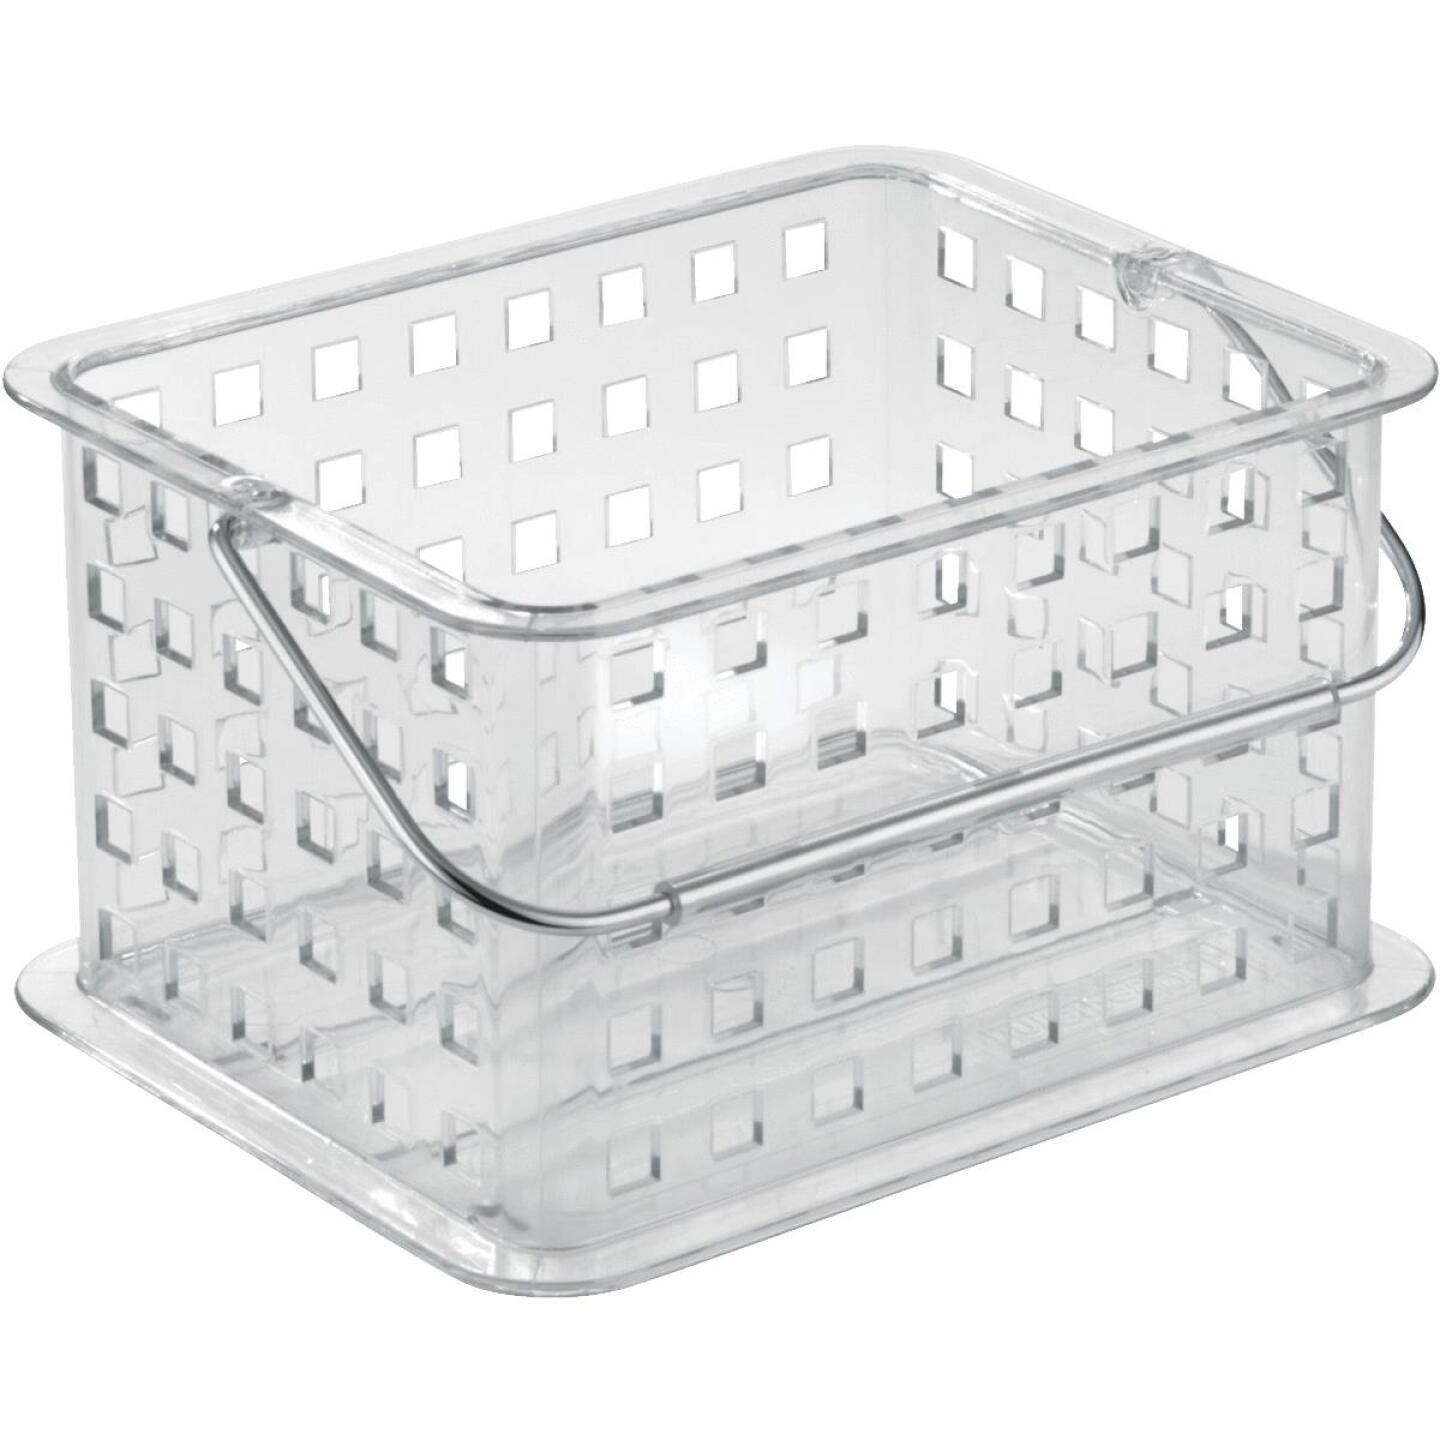 iDesign Clarity 8.8 In. L.x 6.9 In. H. x 5.3 In. D. Plastic Stackable Storage Basket Image 1